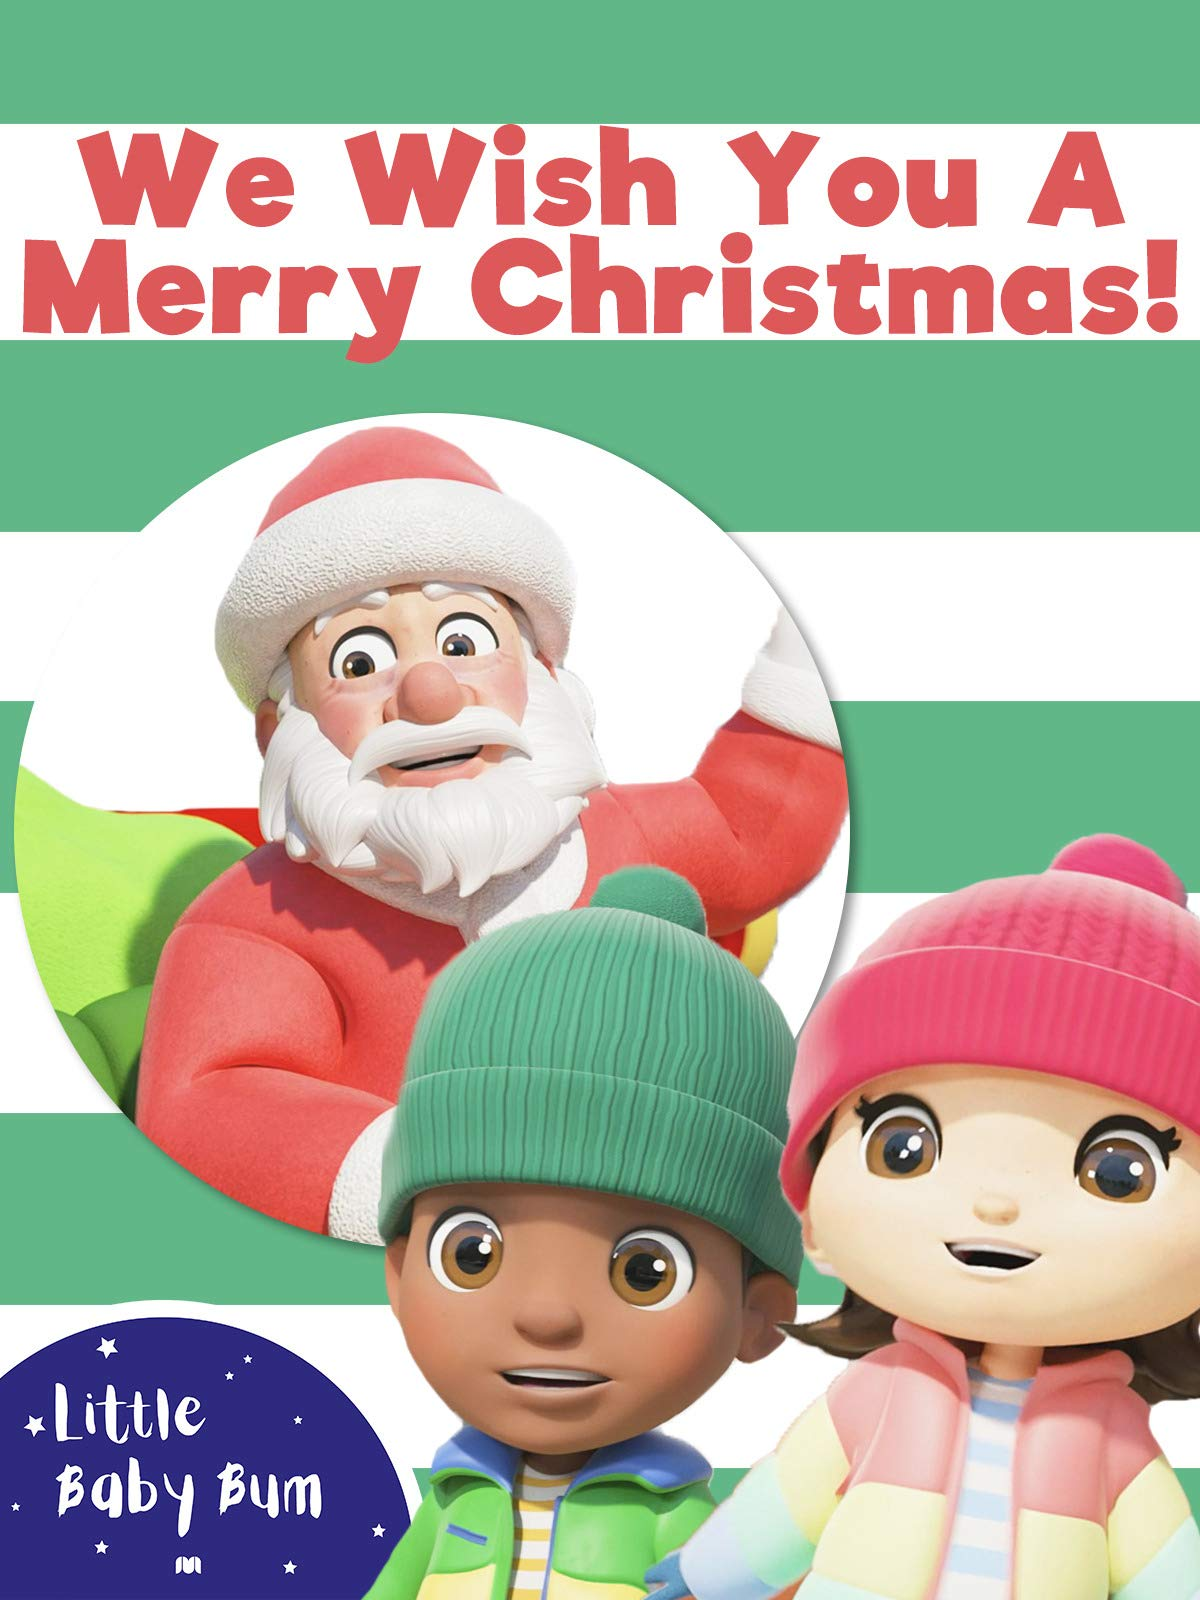 We Wish You A Merry Christmas! - Little Baby Bum